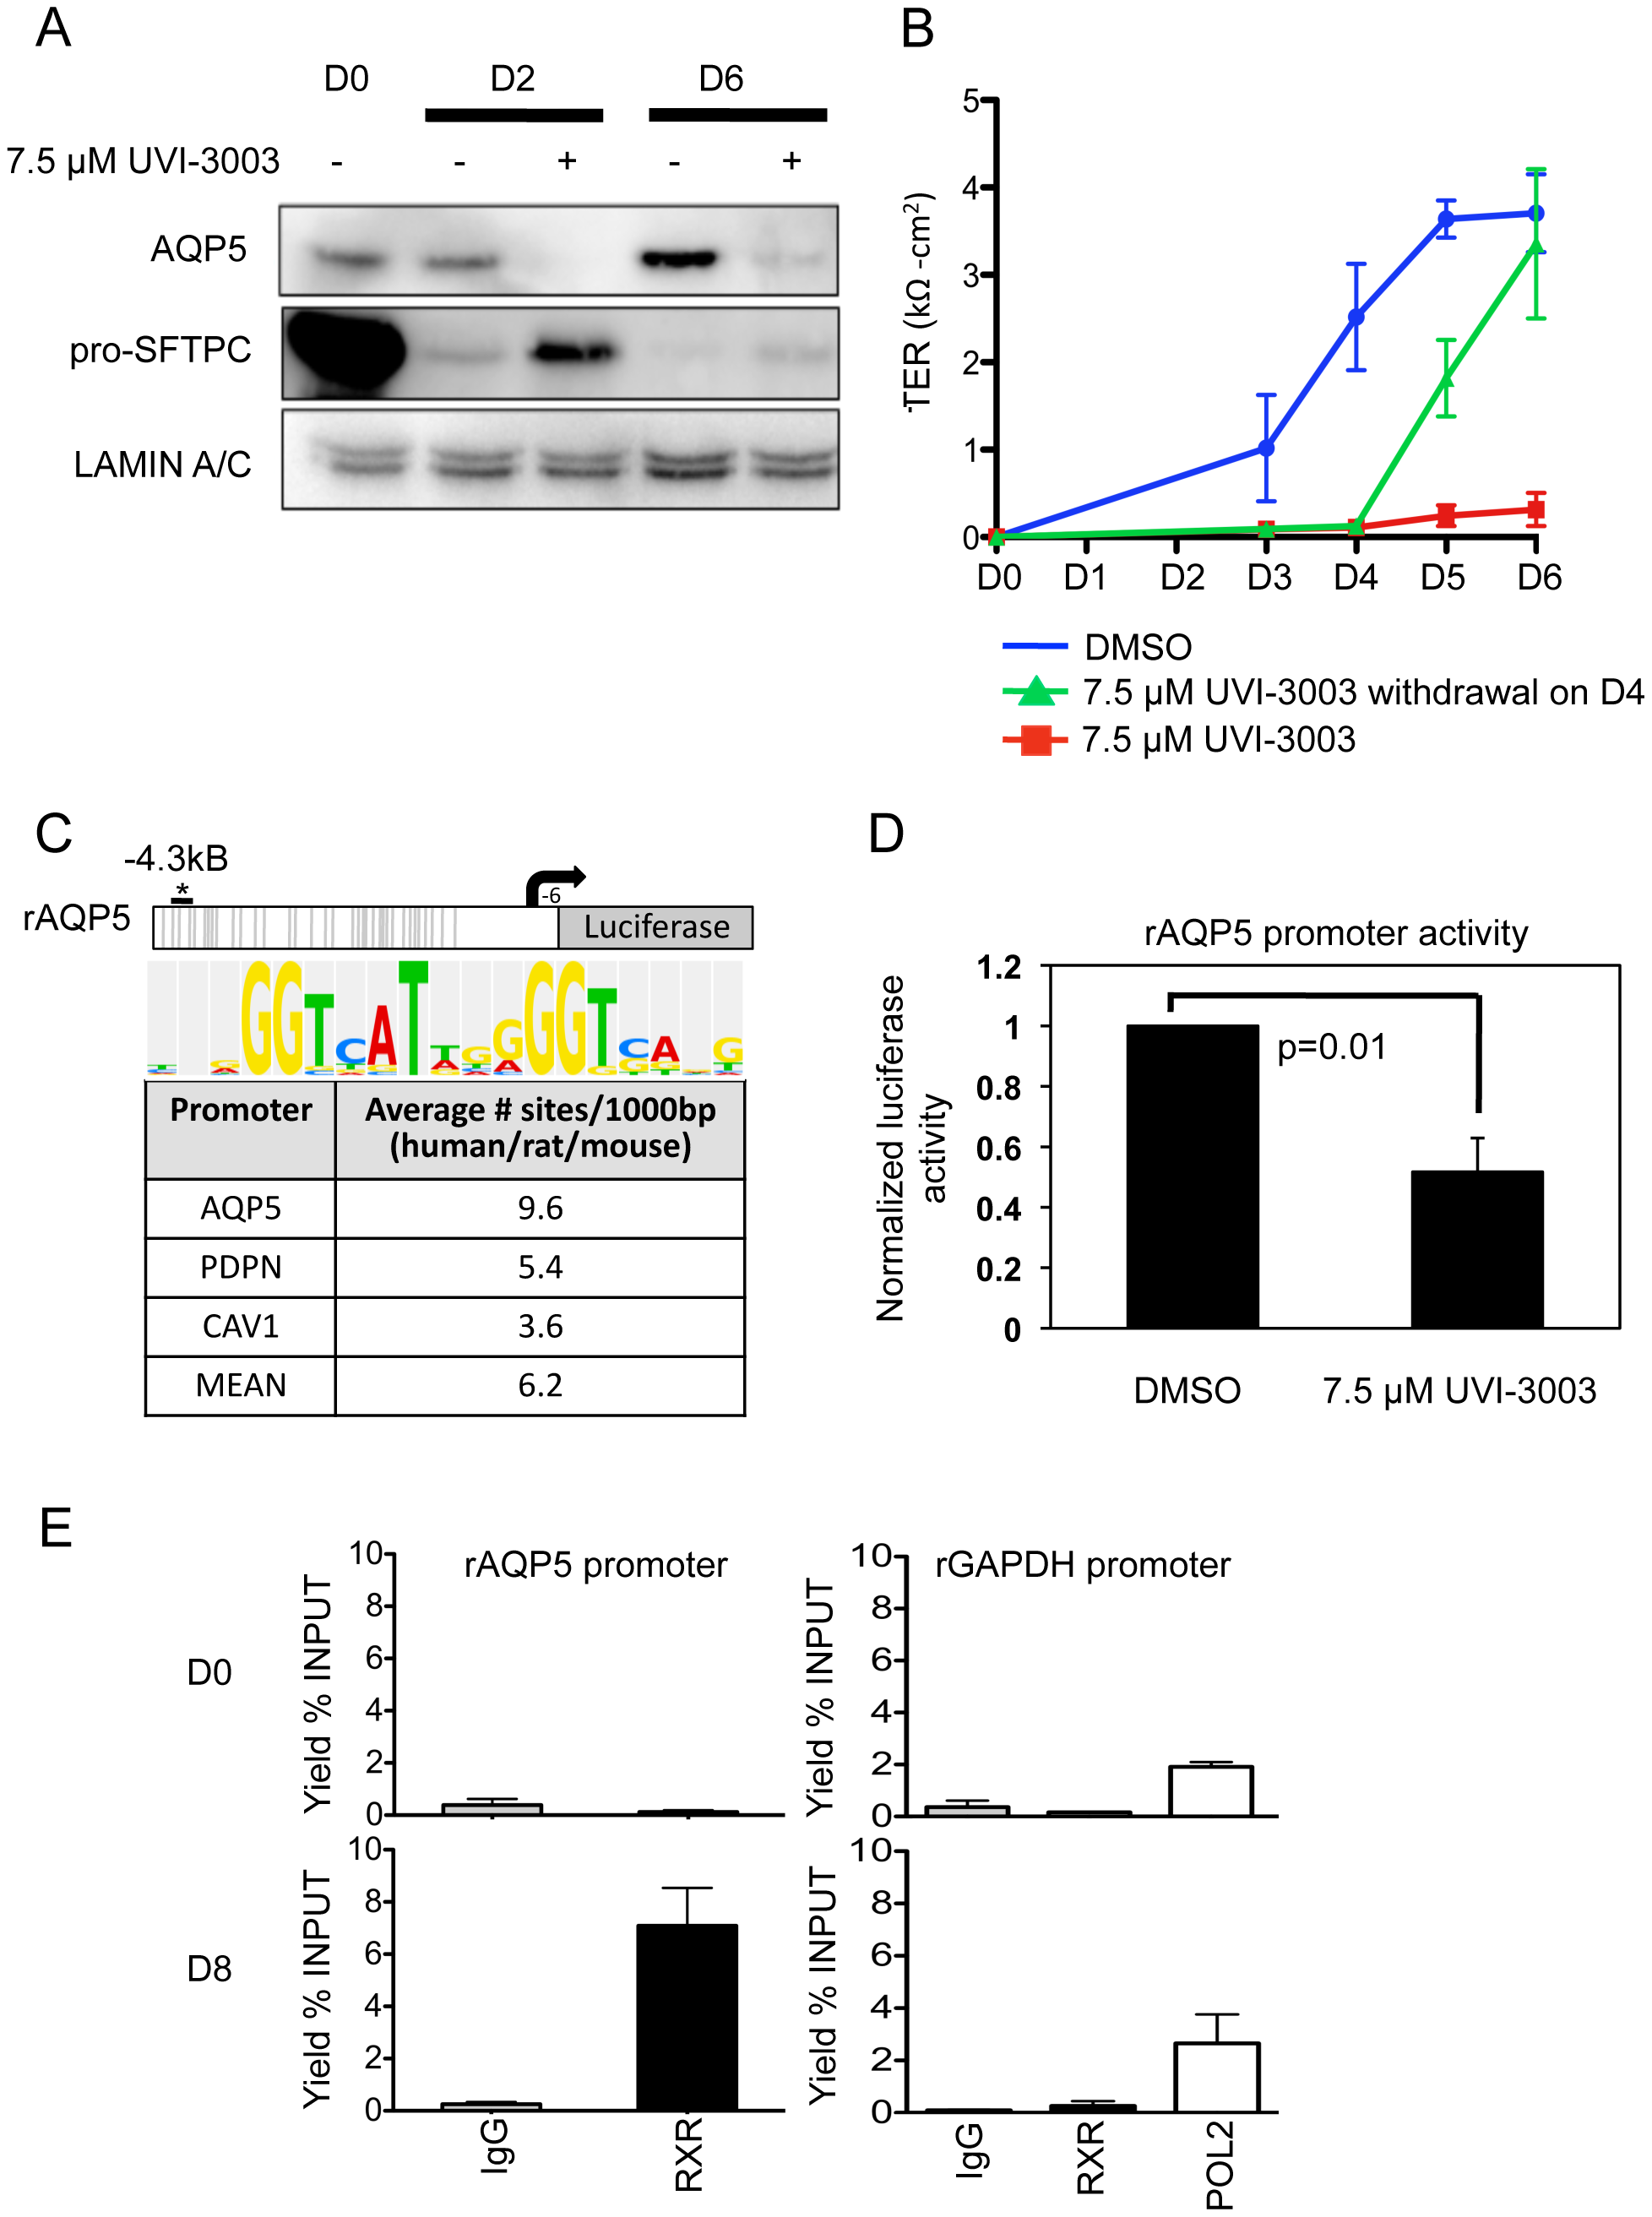 Functional validation of a transcription factor signaling pathway predicted from bioinformatics analysis.